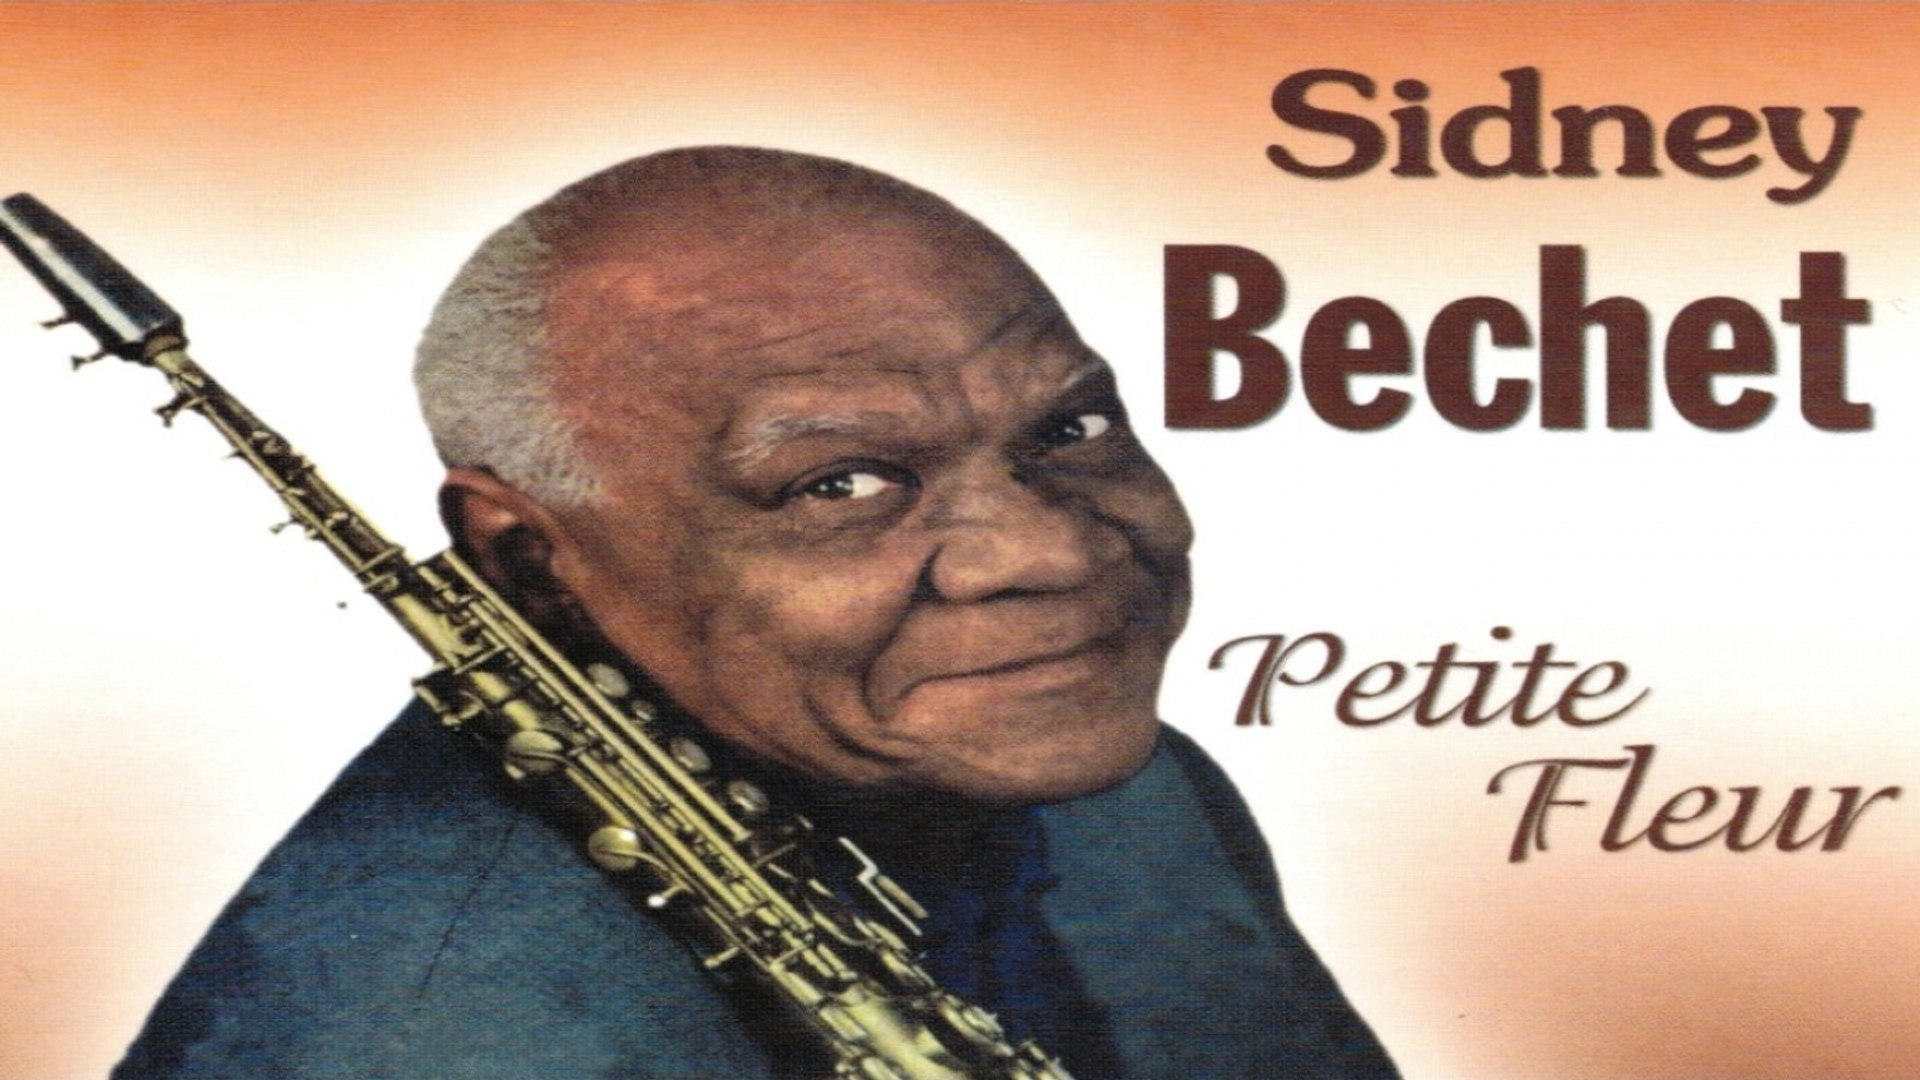 The very best of Sidney Bechet - 1 hour of JAZZ - Vidéo Dailymotion